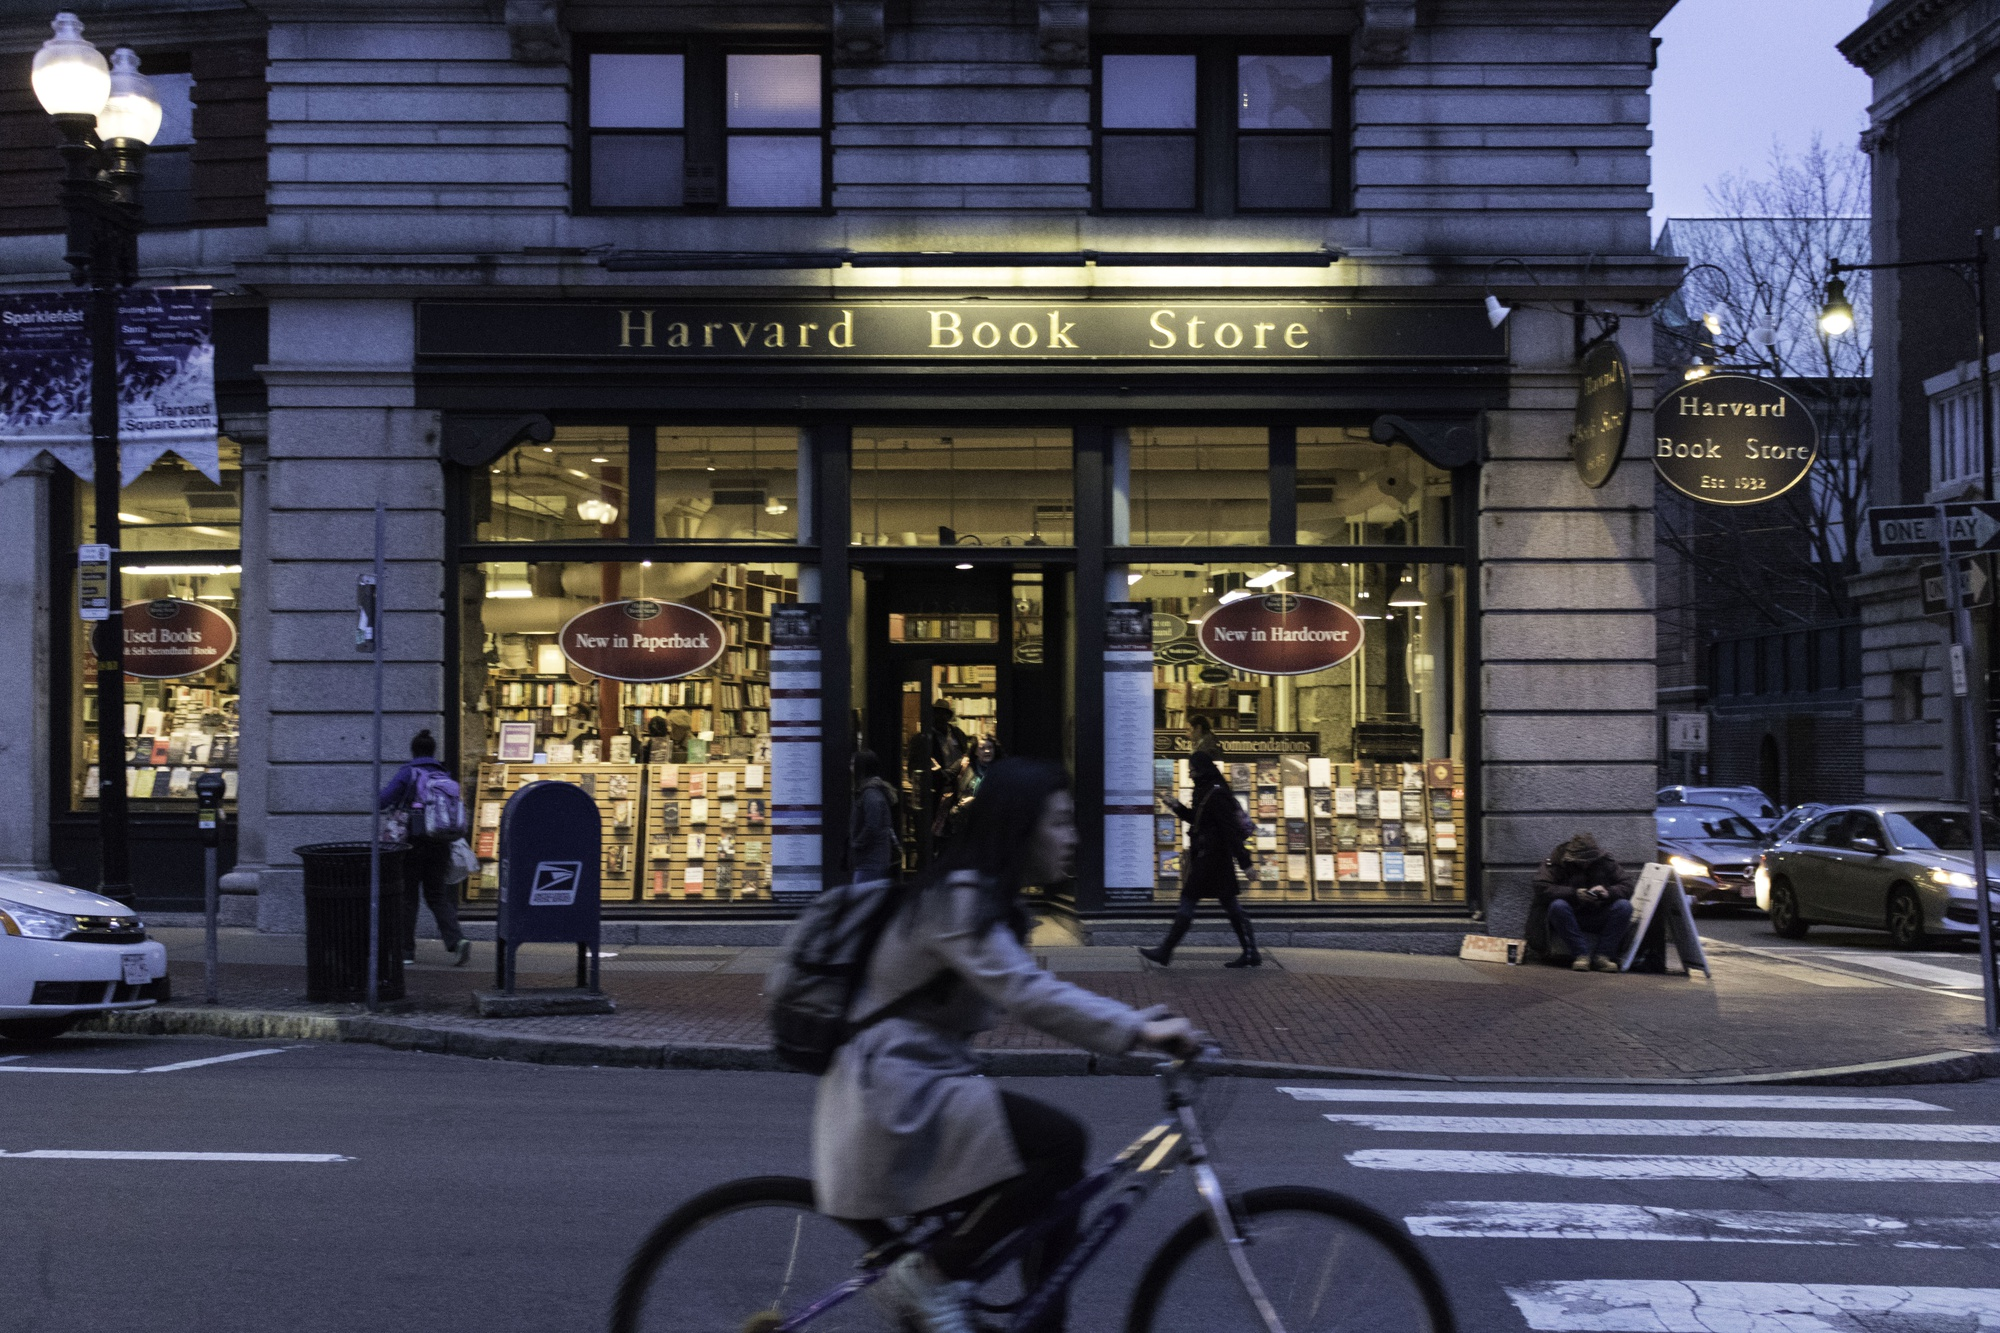 The Harvard Book Store at twilight.